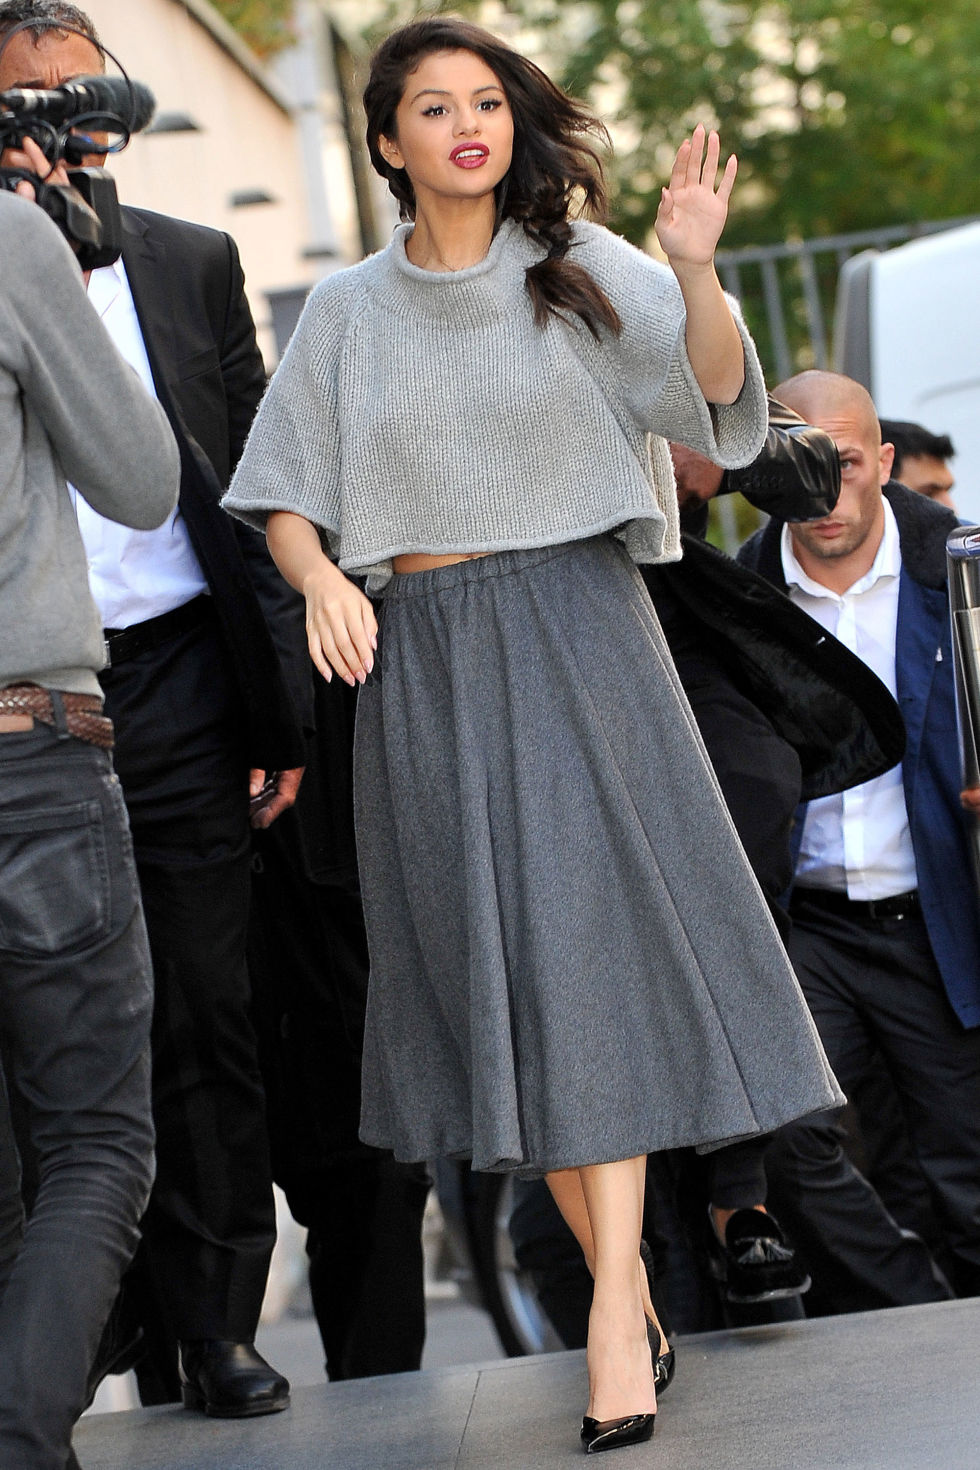 Selena Gomezs Best Outfits All Have One Thing in Common